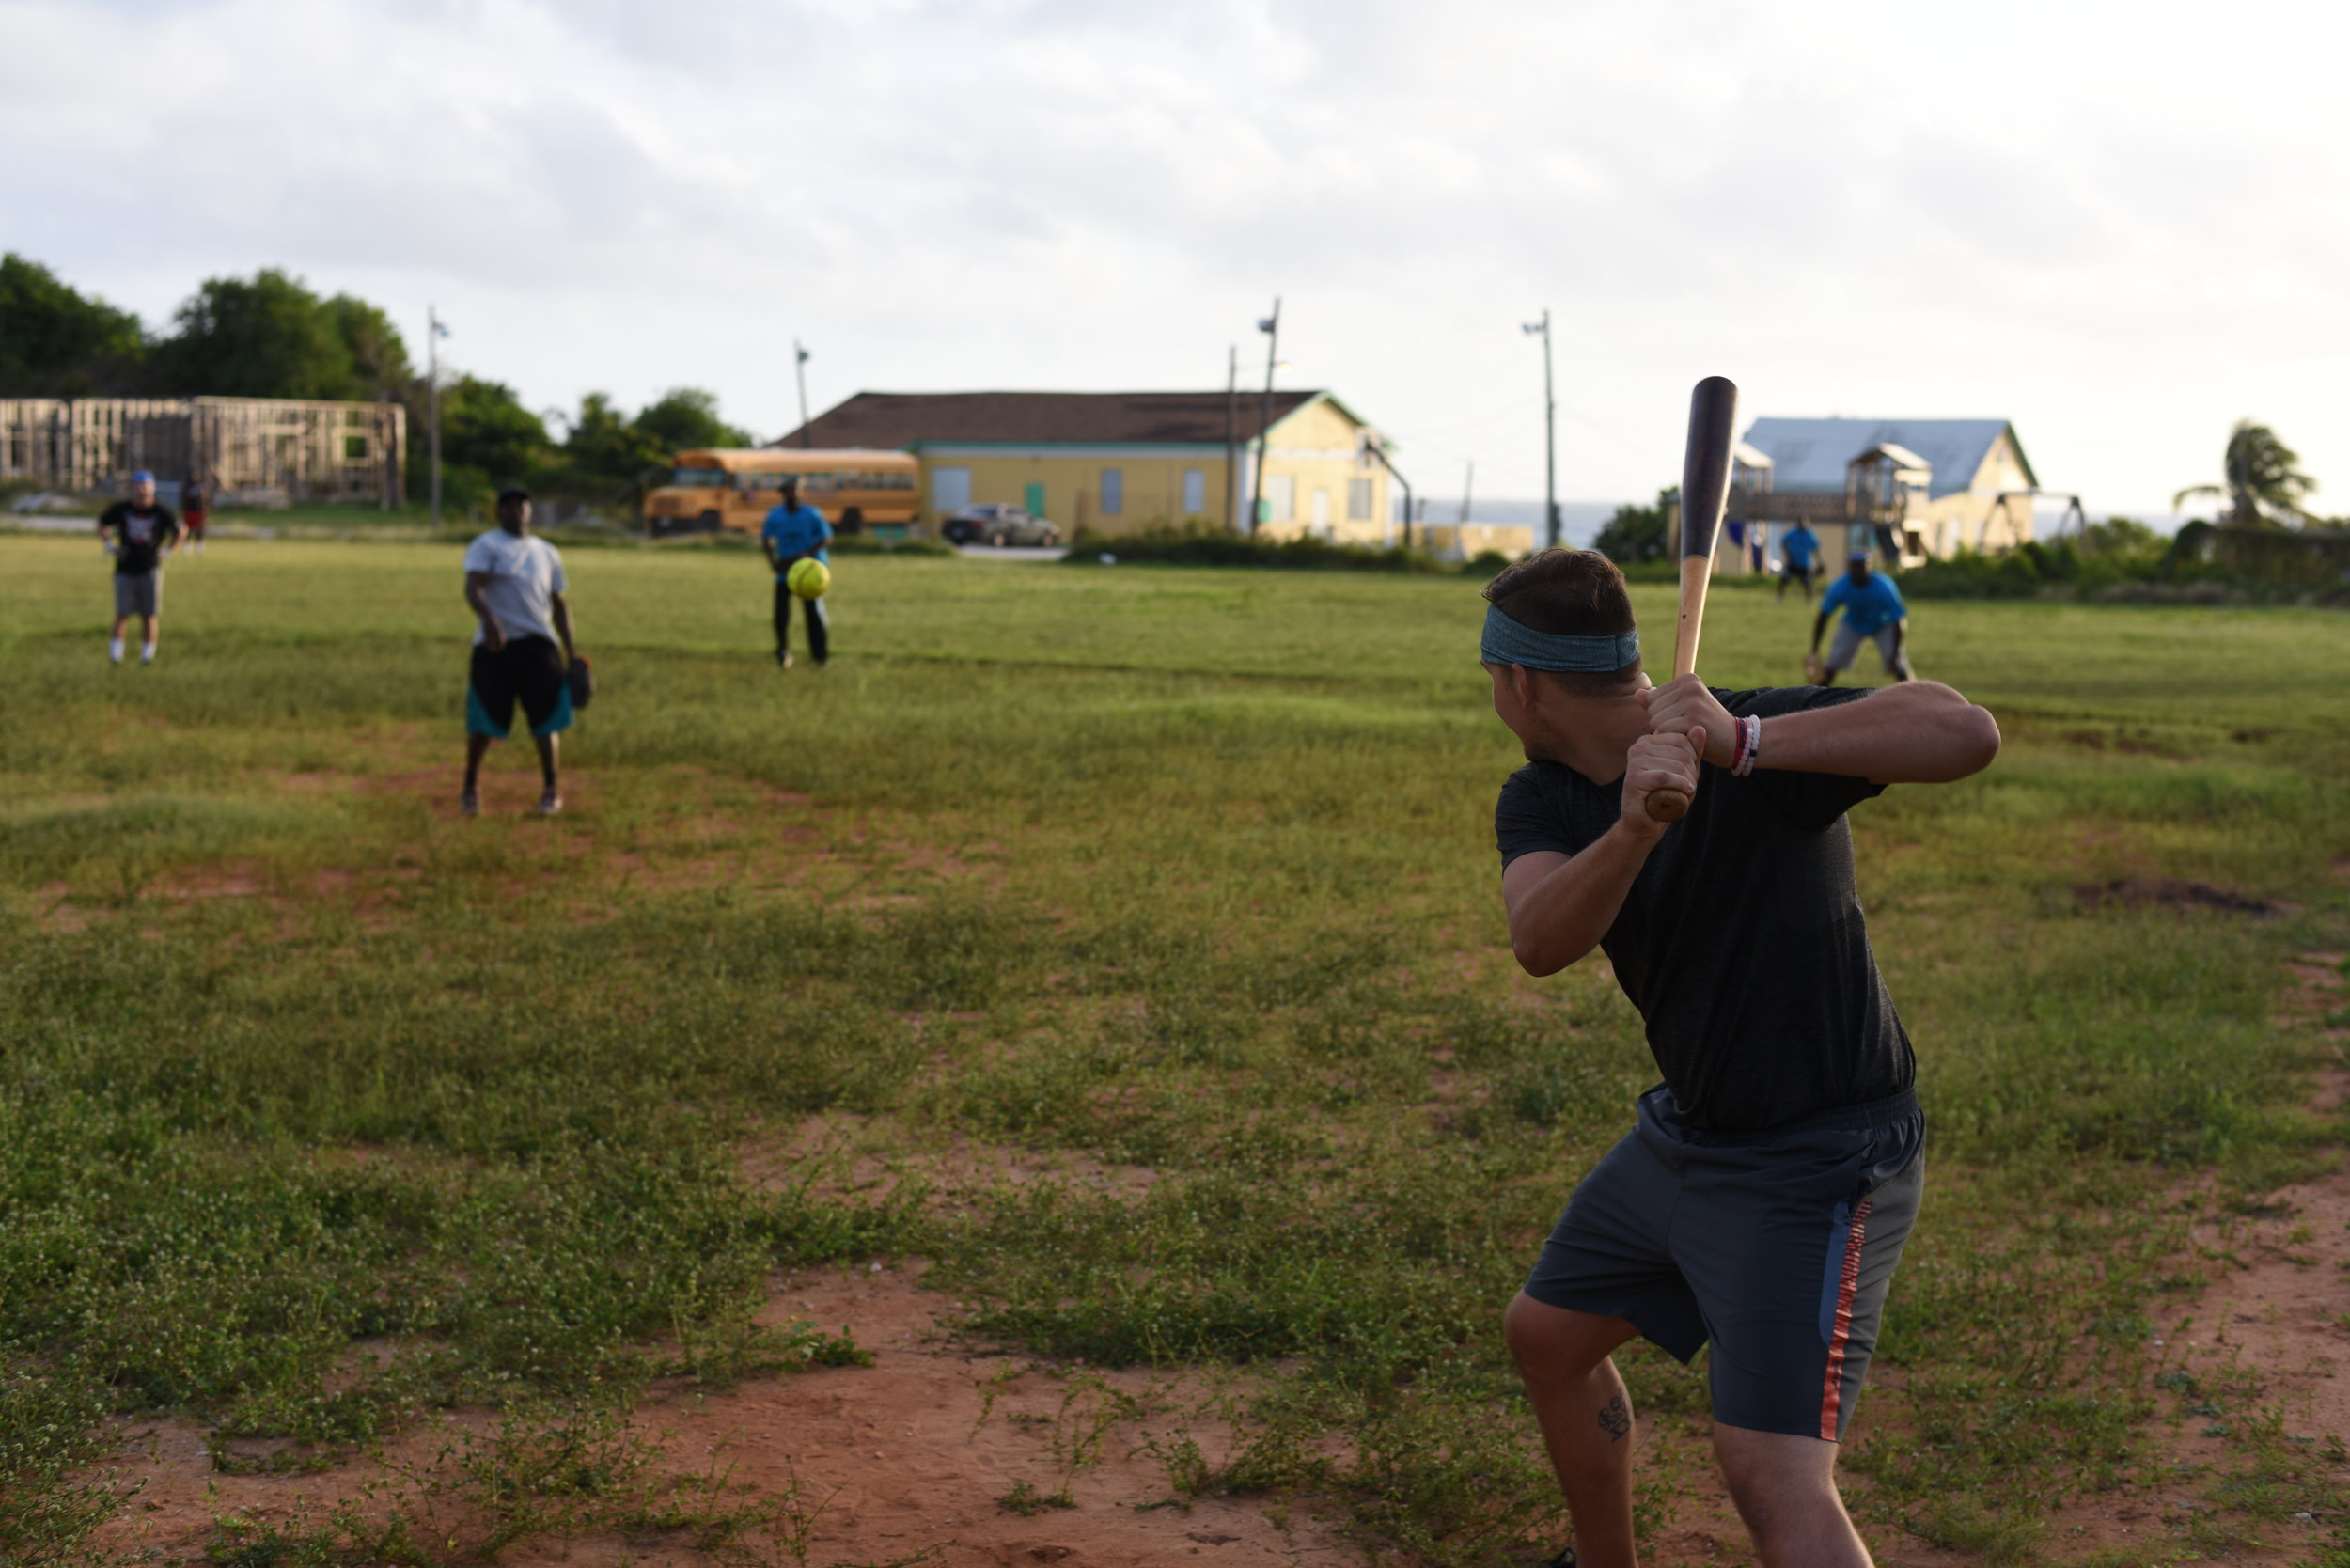 Nathaniel Lowe up to bat during a softball game against the local team that in James Cistern won the Bahamian National Championship in fast pitch softball.